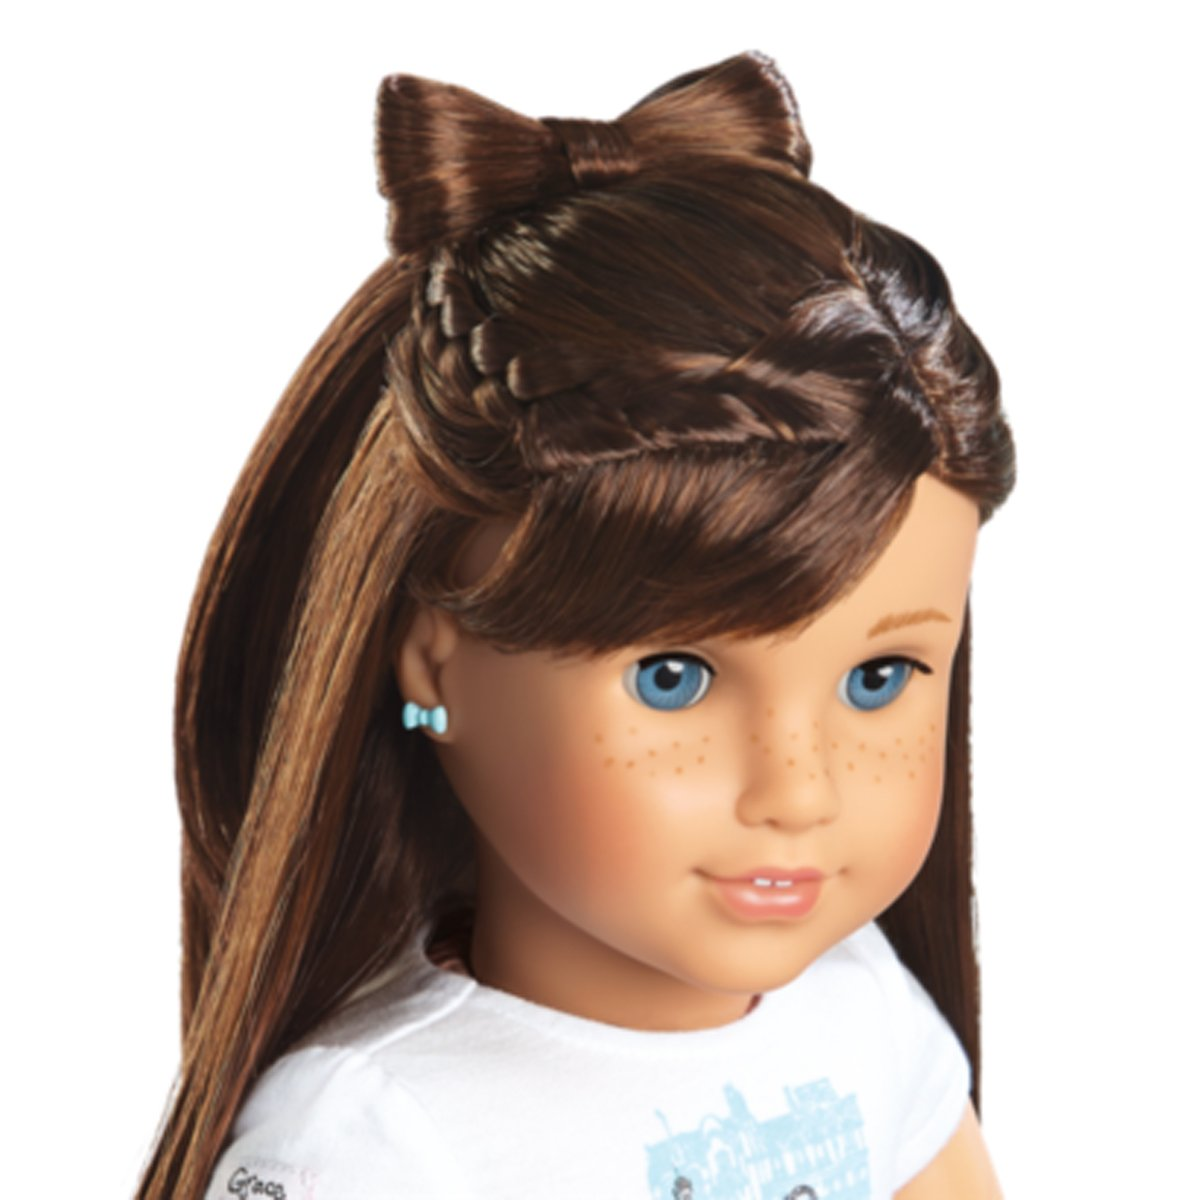 hairstyles for american dolls with hair five influences of hairstyles for american